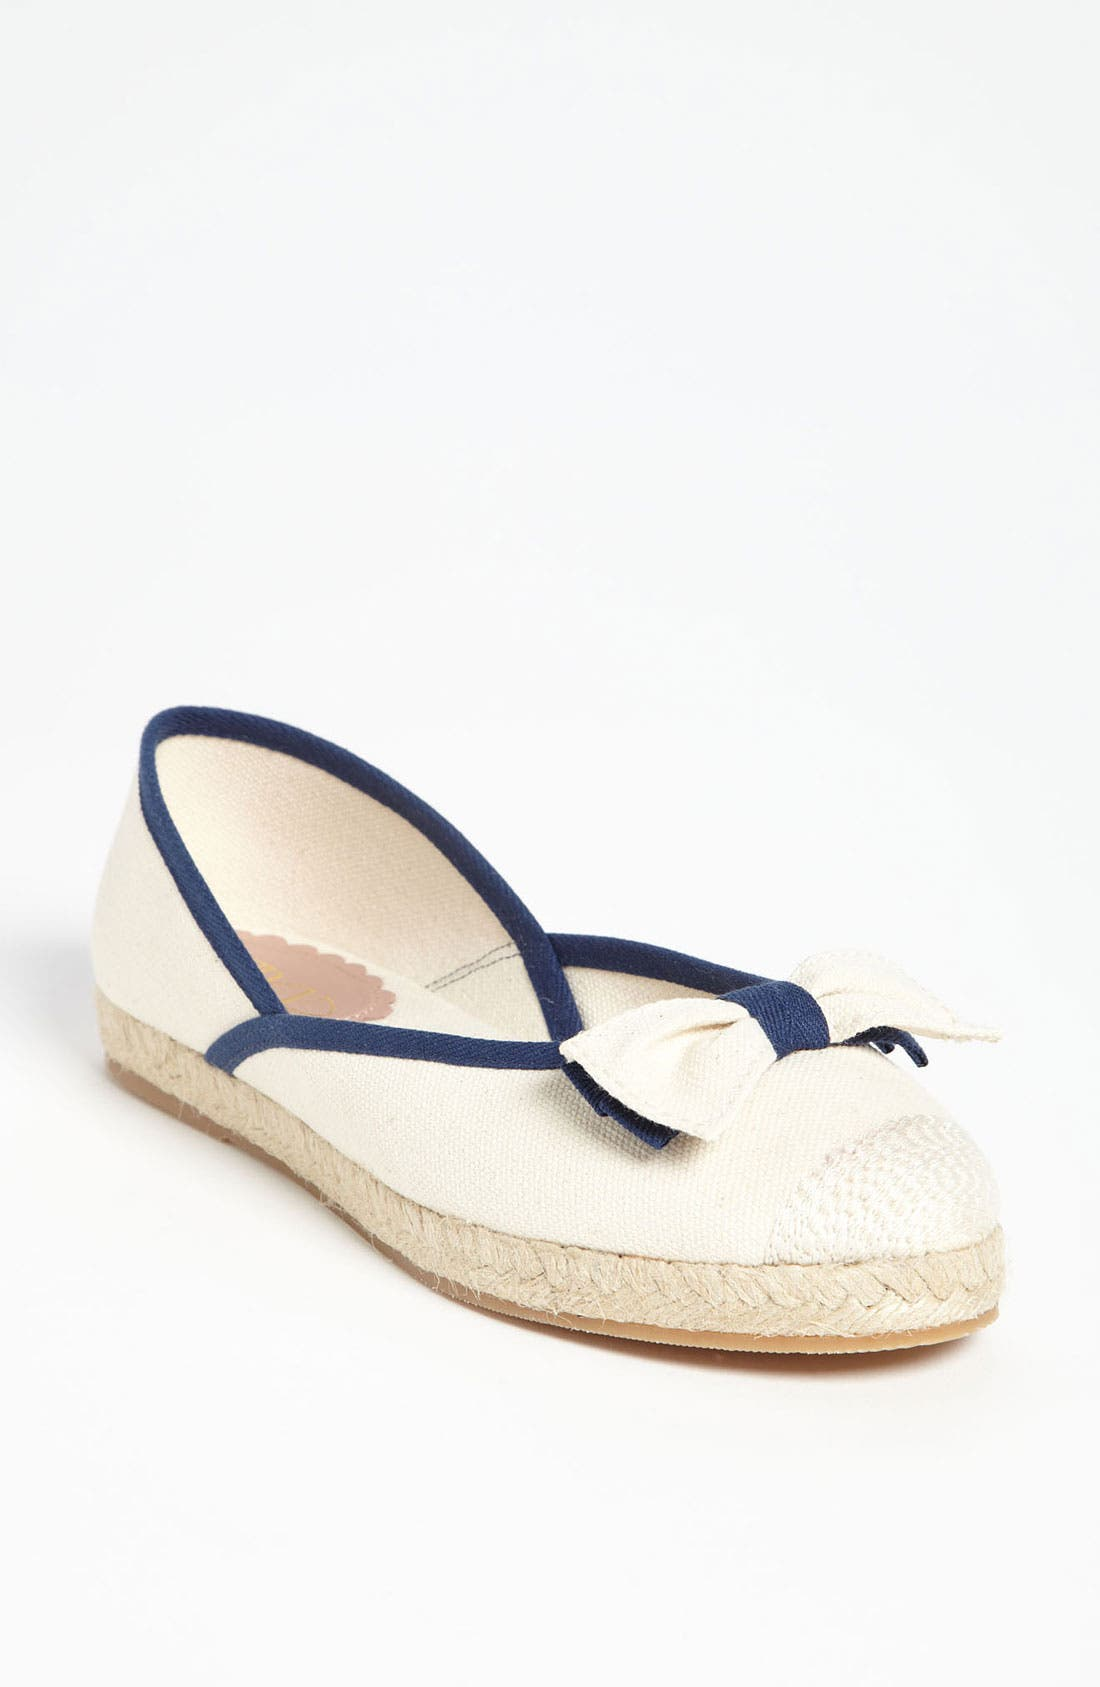 Alternate Image 1 Selected - RED Valentino Canvas Flat